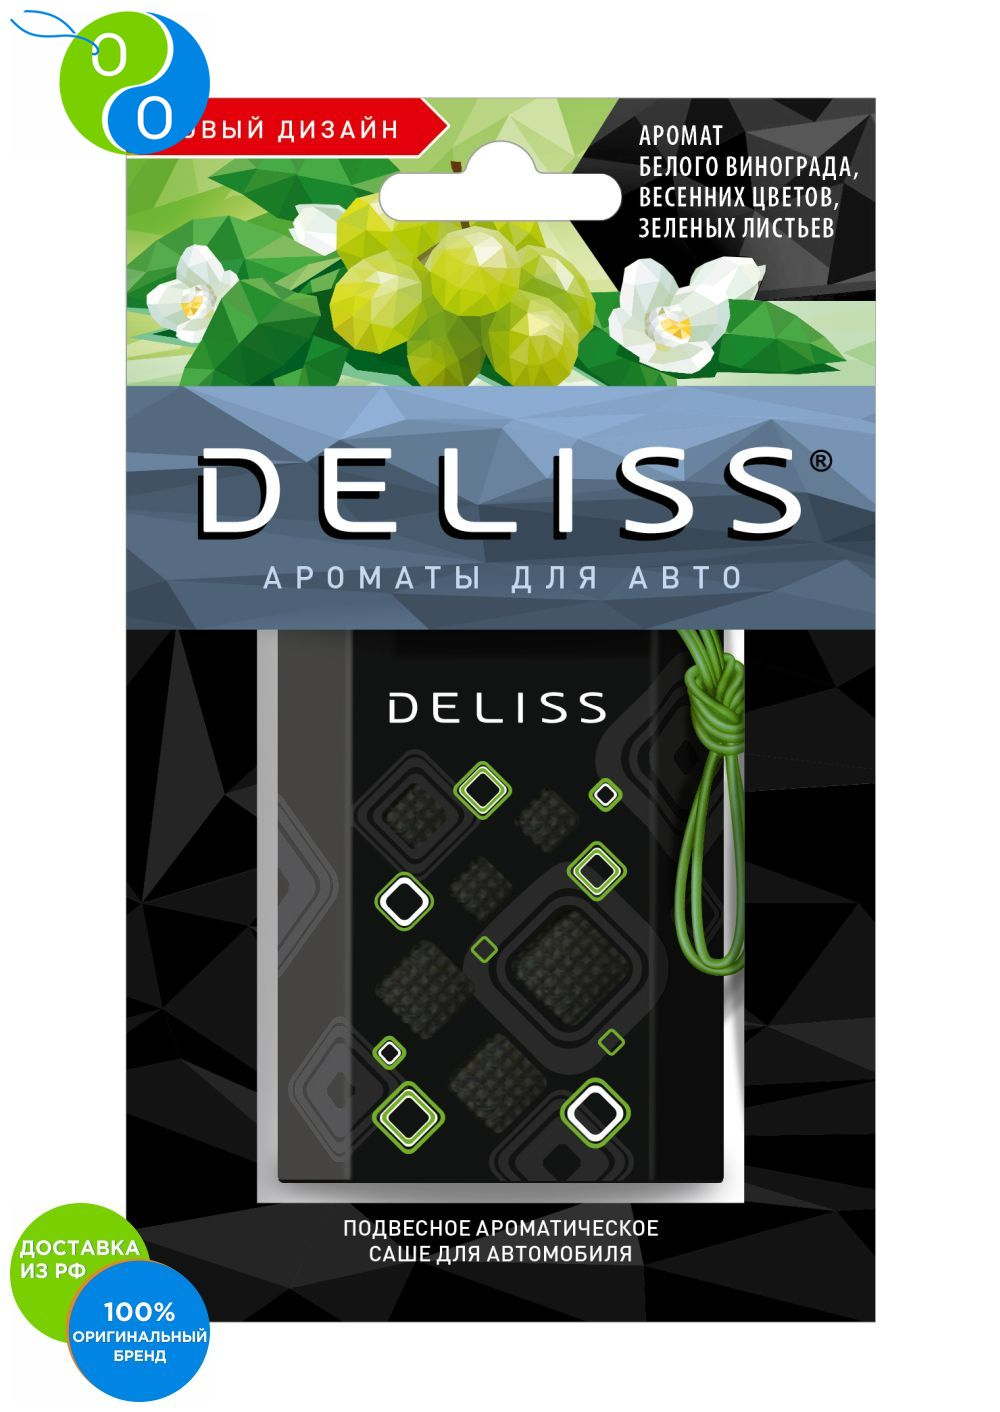 DELISS Suspended aromatic sachets for Harmony car,delis, deliss, dilis, flavor, in a machine Delis, Deliss, diliss, herringbone to machine smell in the car, the car sachet